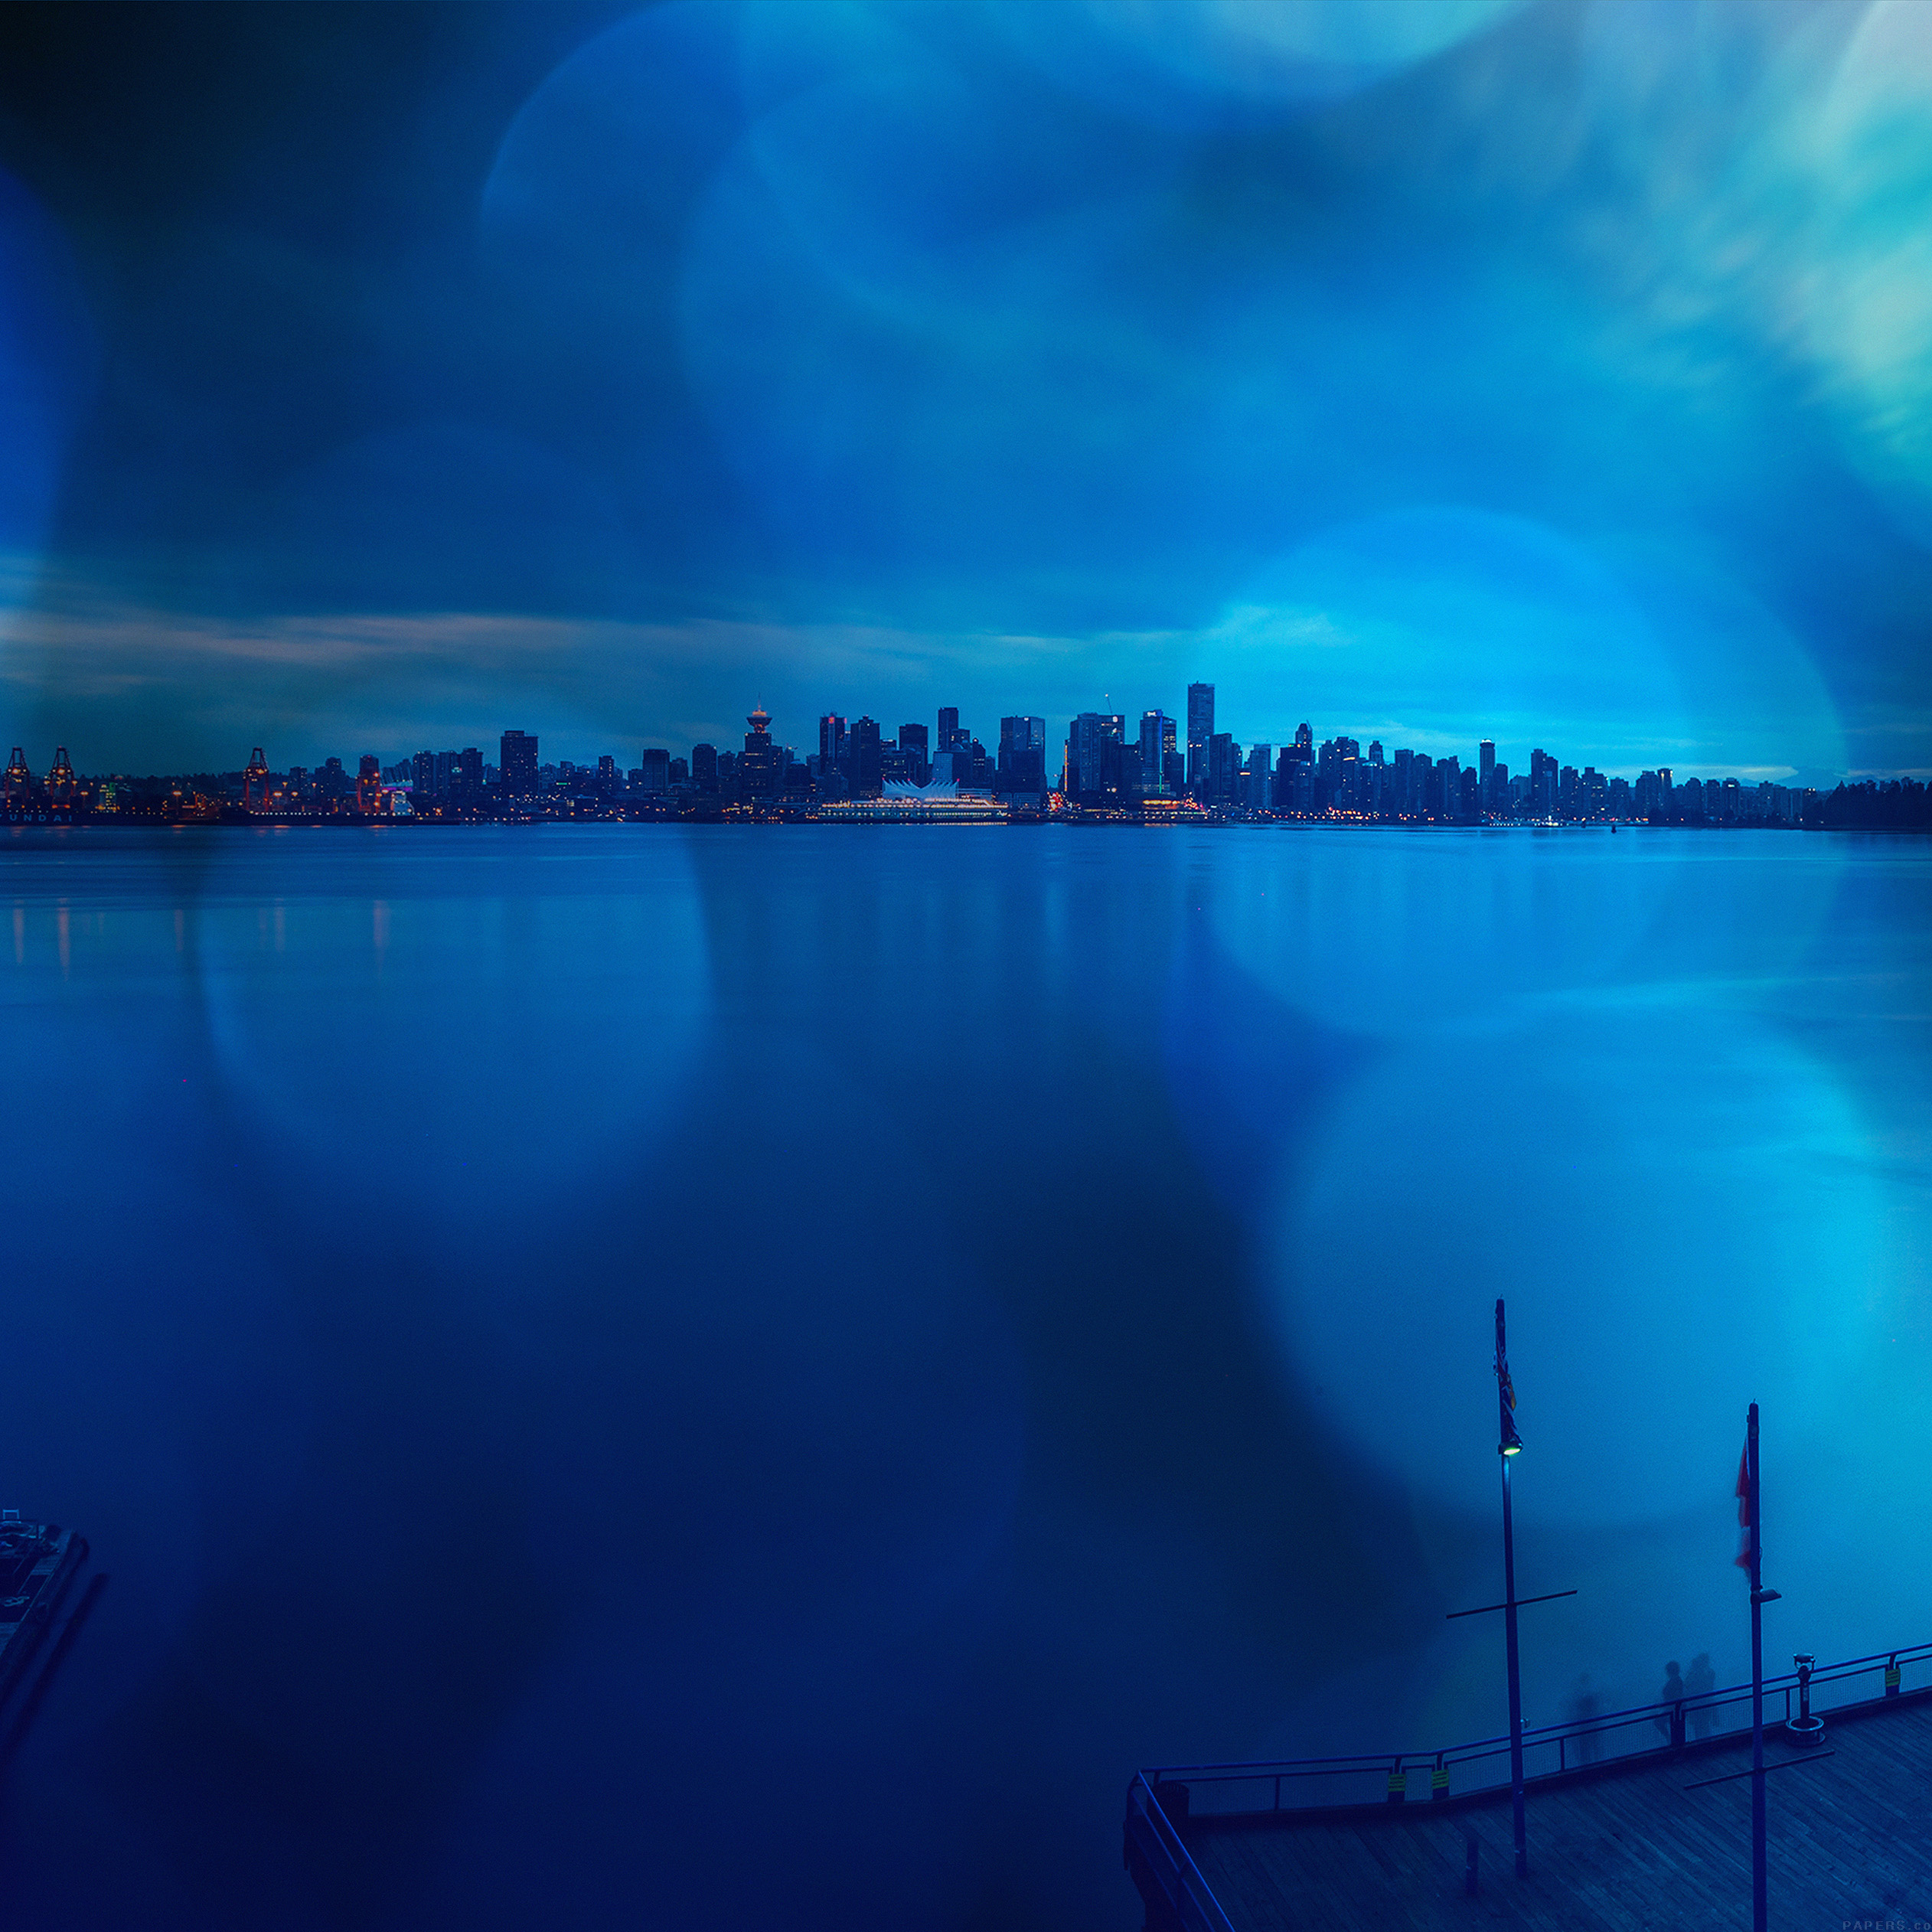 lake-city-afternoon-blue-flare-nature-9-wallpaper